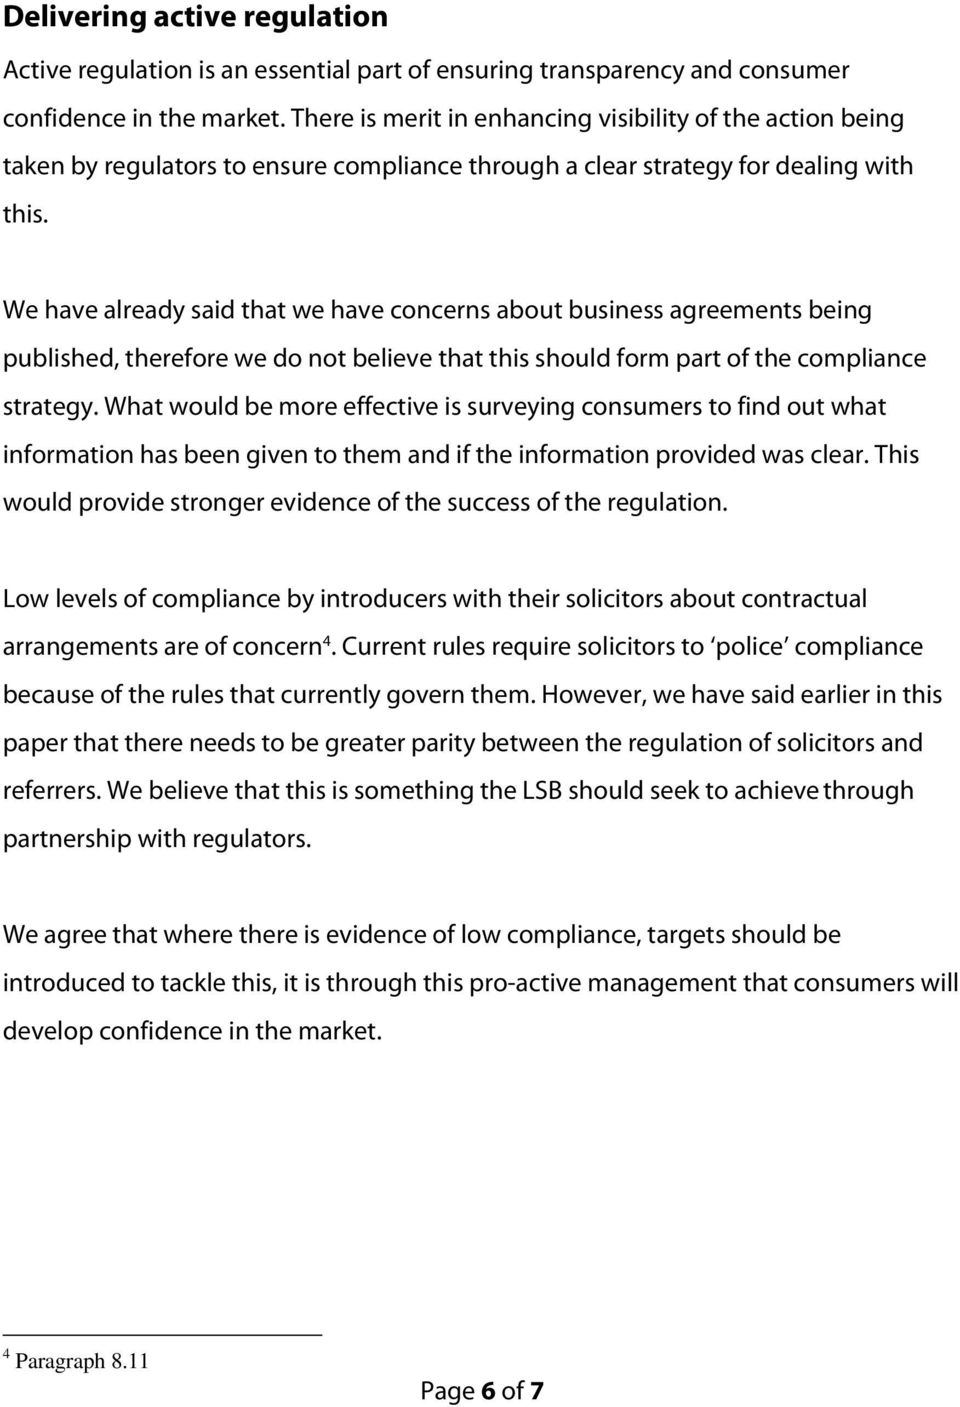 We have already said that we have concerns about business agreements being published, therefore we do not believe that this should form part of the compliance strategy.